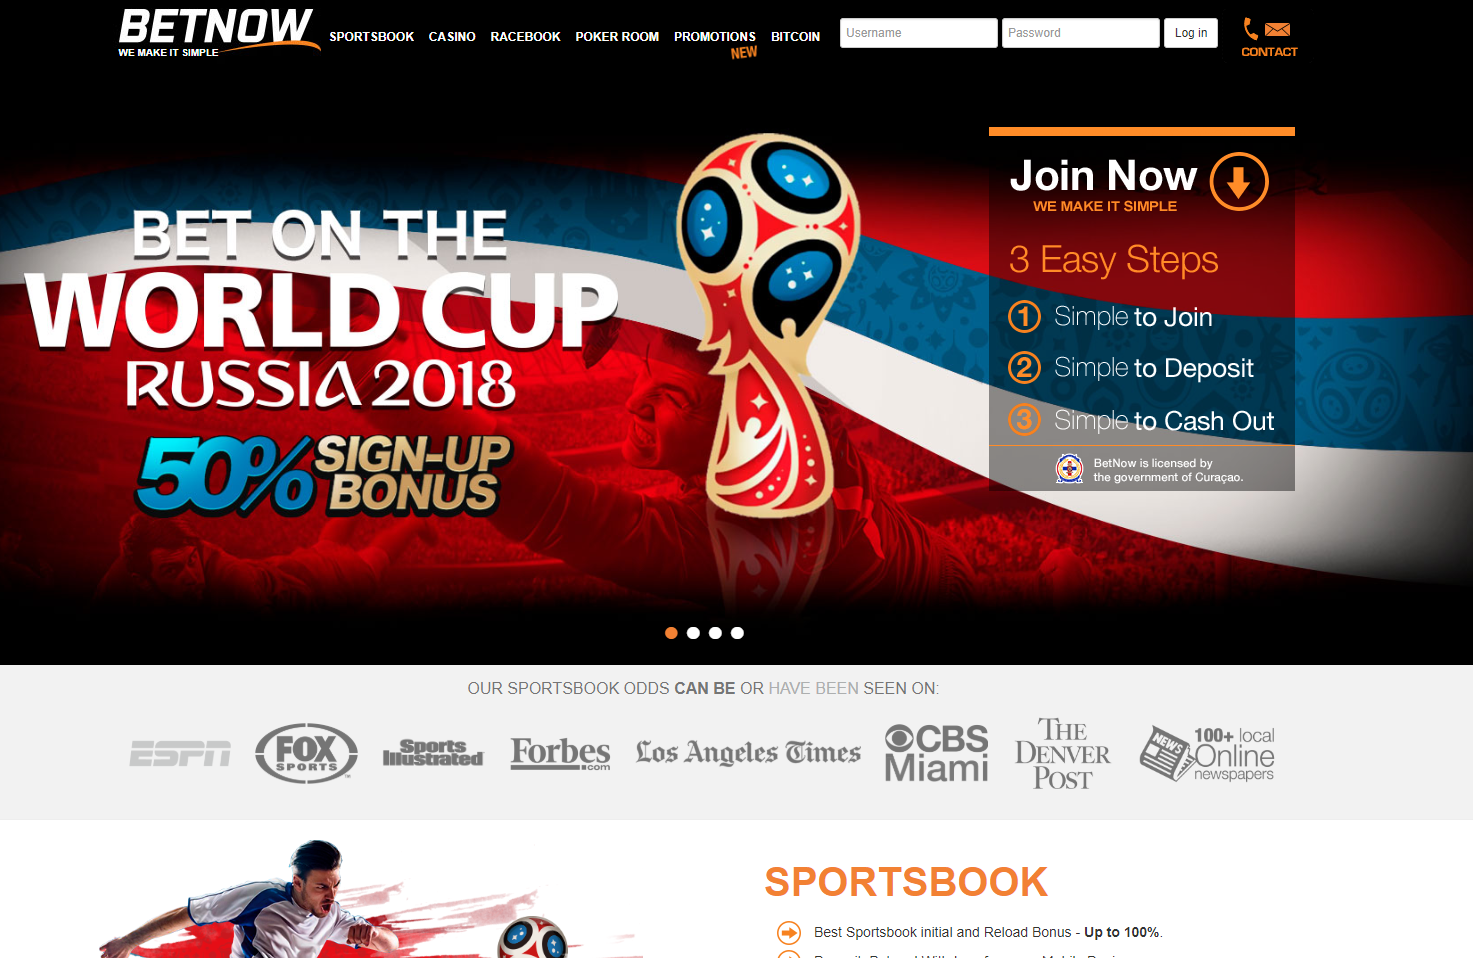 BetNow.eu USA Sportsbook Review + Free Bonus Bets